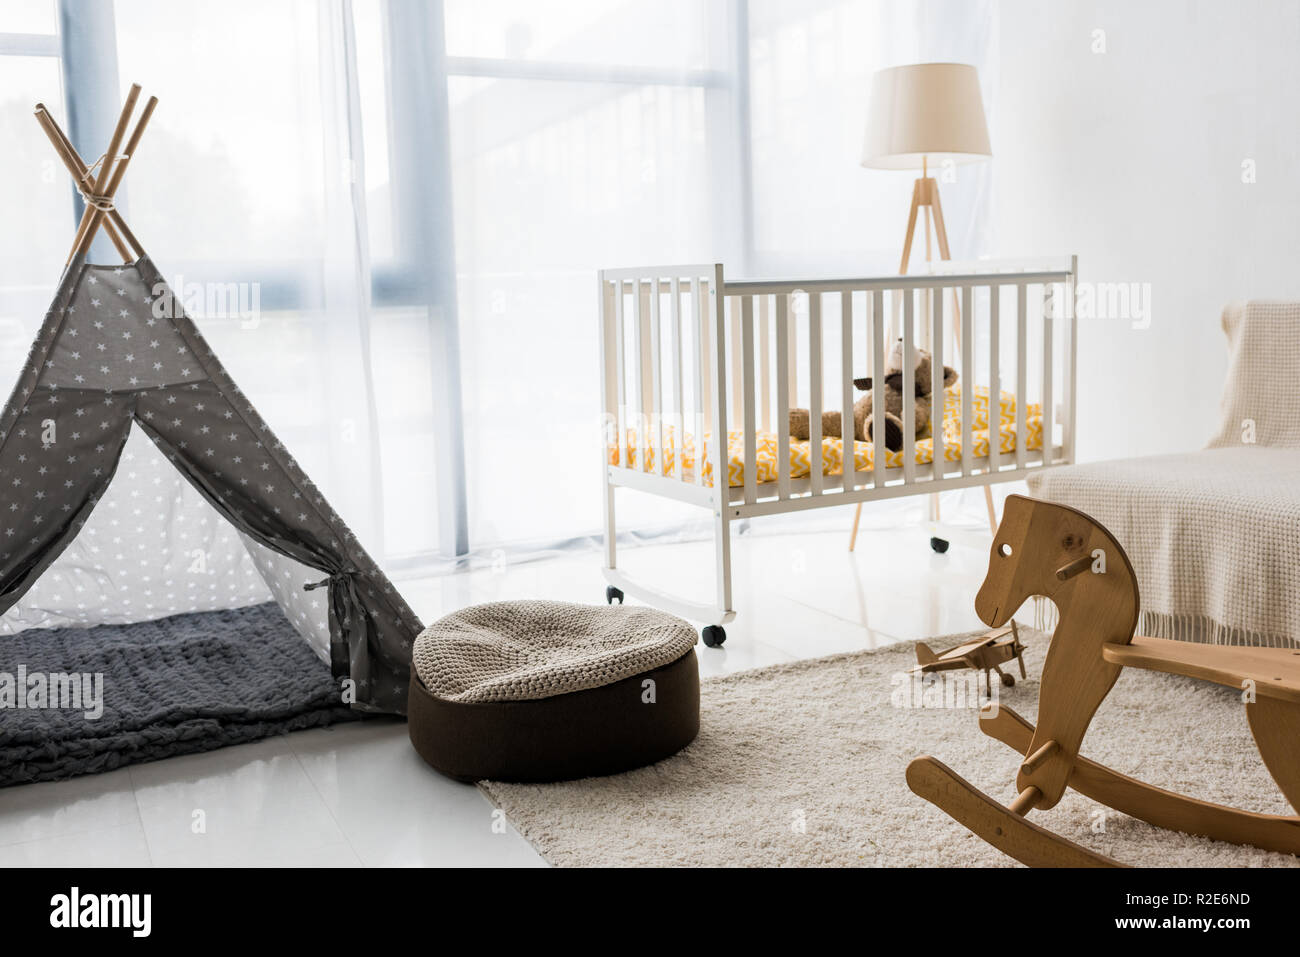 modern interior design of nursery room with bean bag chair - Stock Image